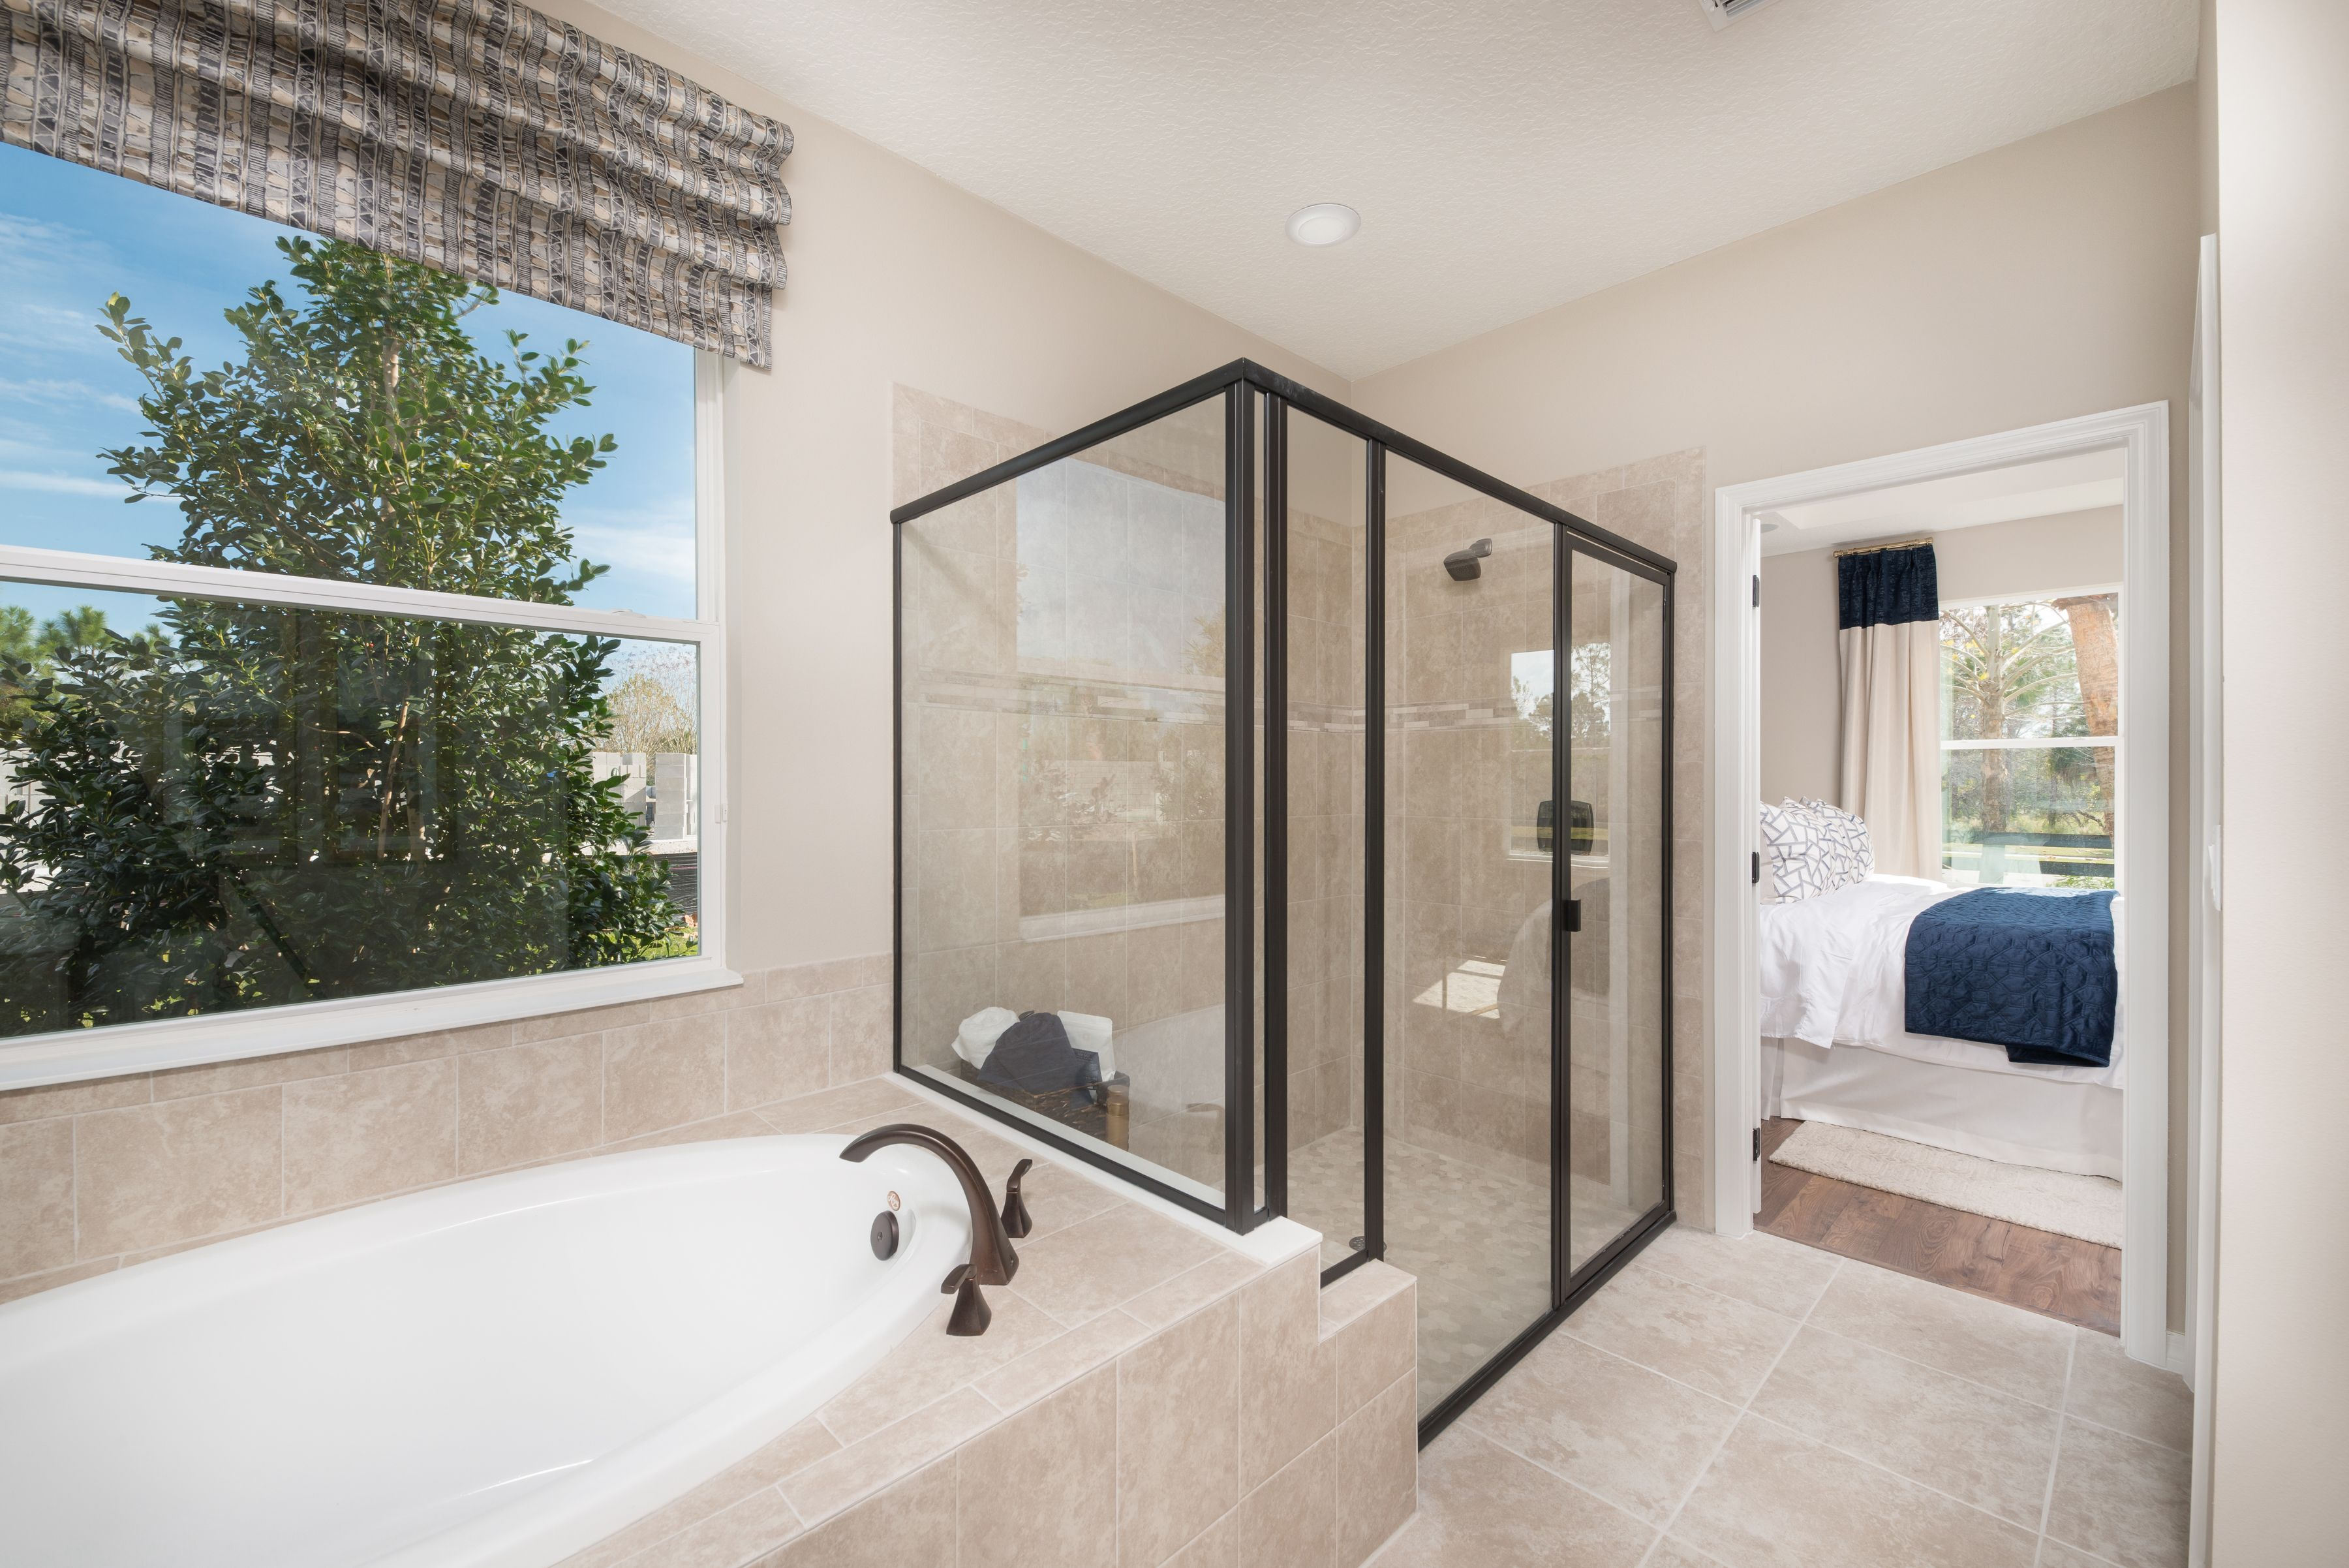 Bathroom featured in the Antigua By Taylor Morrison in Orlando, FL